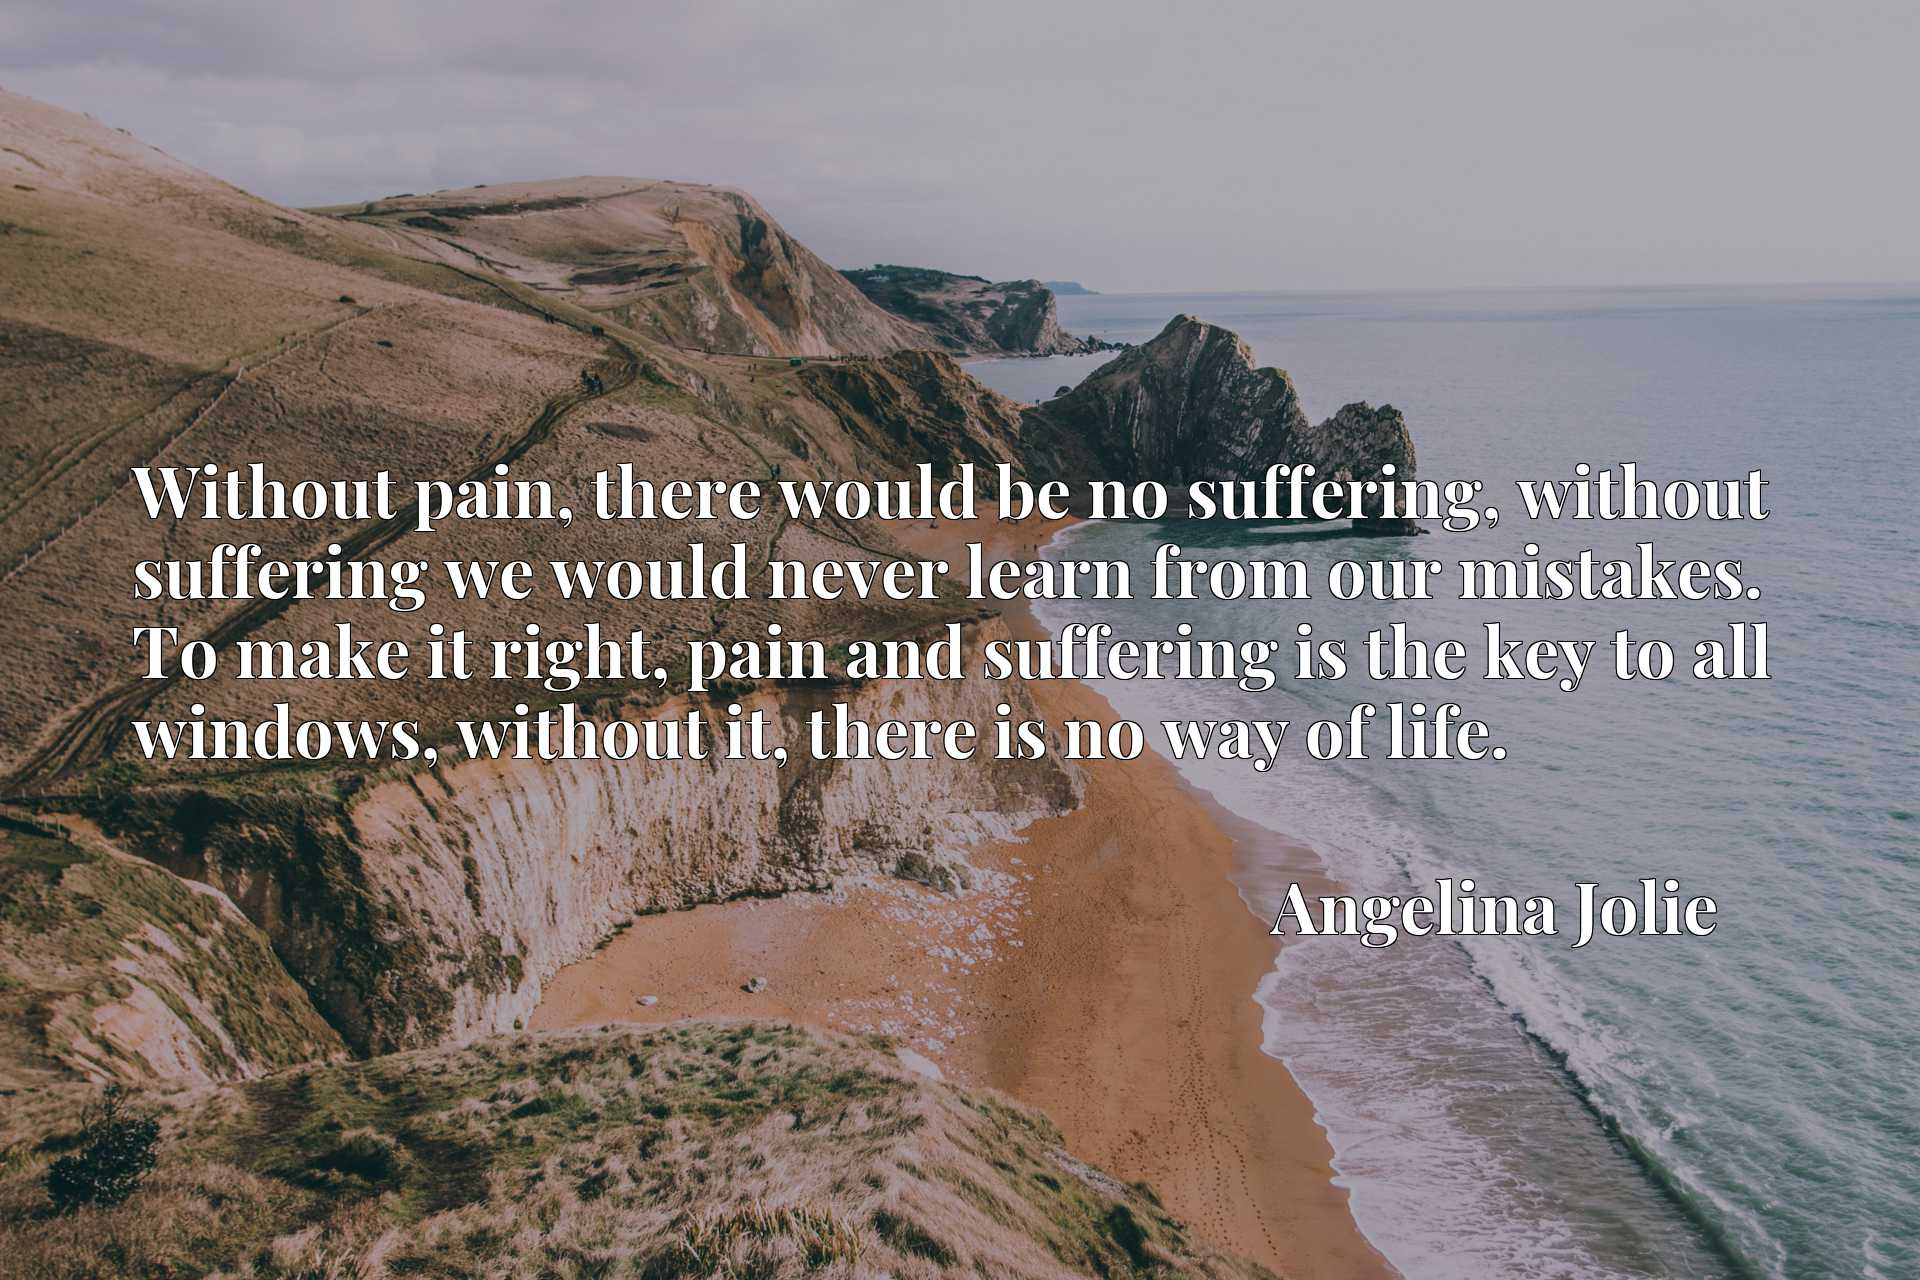 Without pain, there would be no suffering, without suffering we would never learn from our mistakes. To make it right, pain and suffering is the key to all windows, without it, there is no way of life.